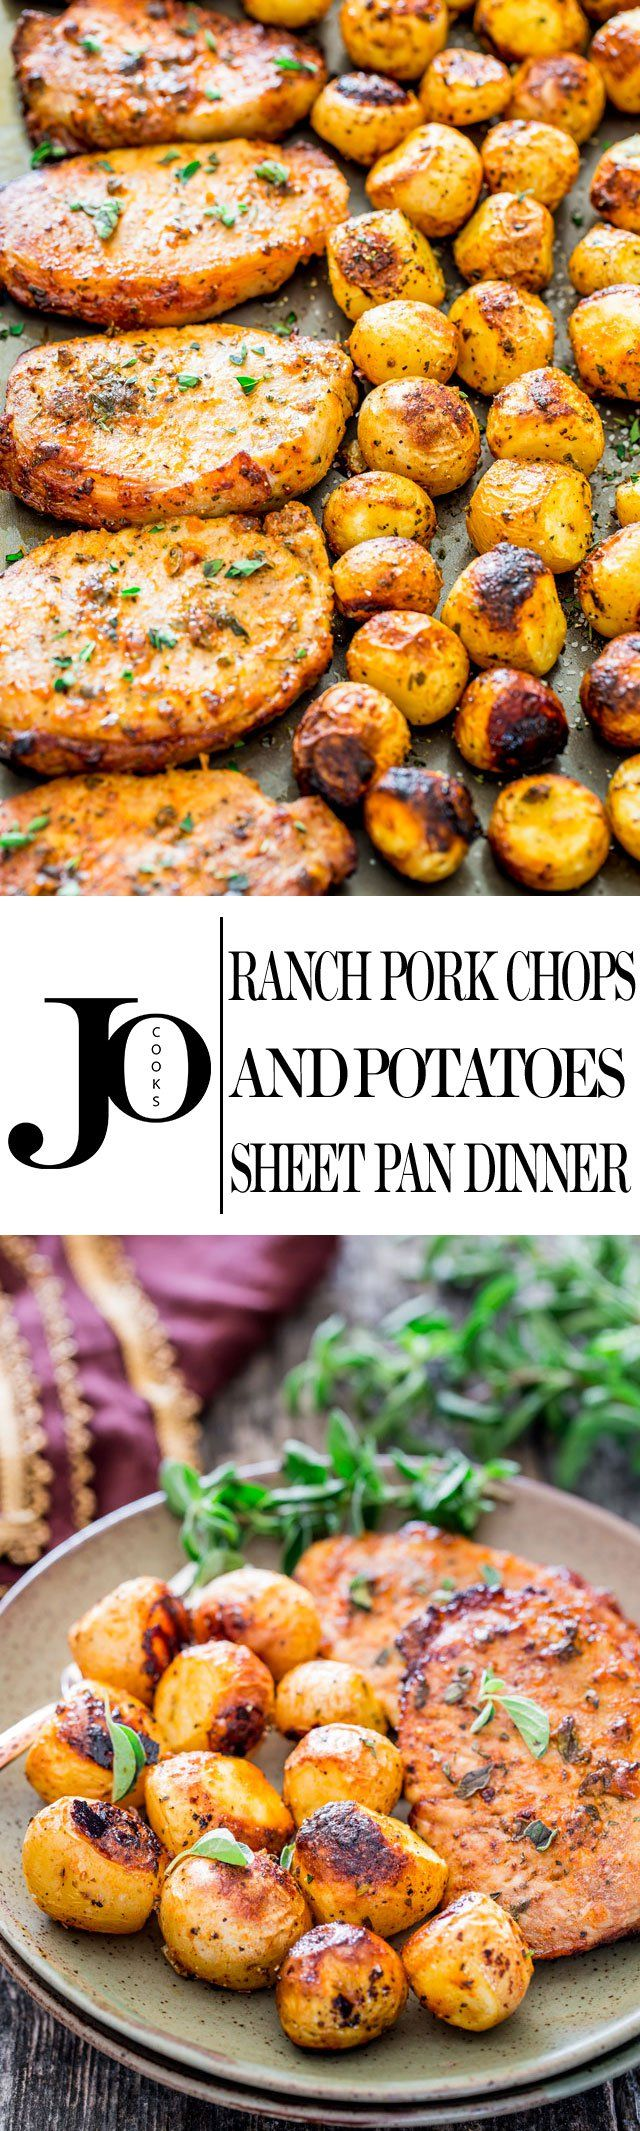 Ranch Pork Chops and Potatoes Sheet Pan Dinner - **without potatoes, for Keto*1*- get your sheet pan to make this delicious and easy dinner with ranch pork chops and potatoes!